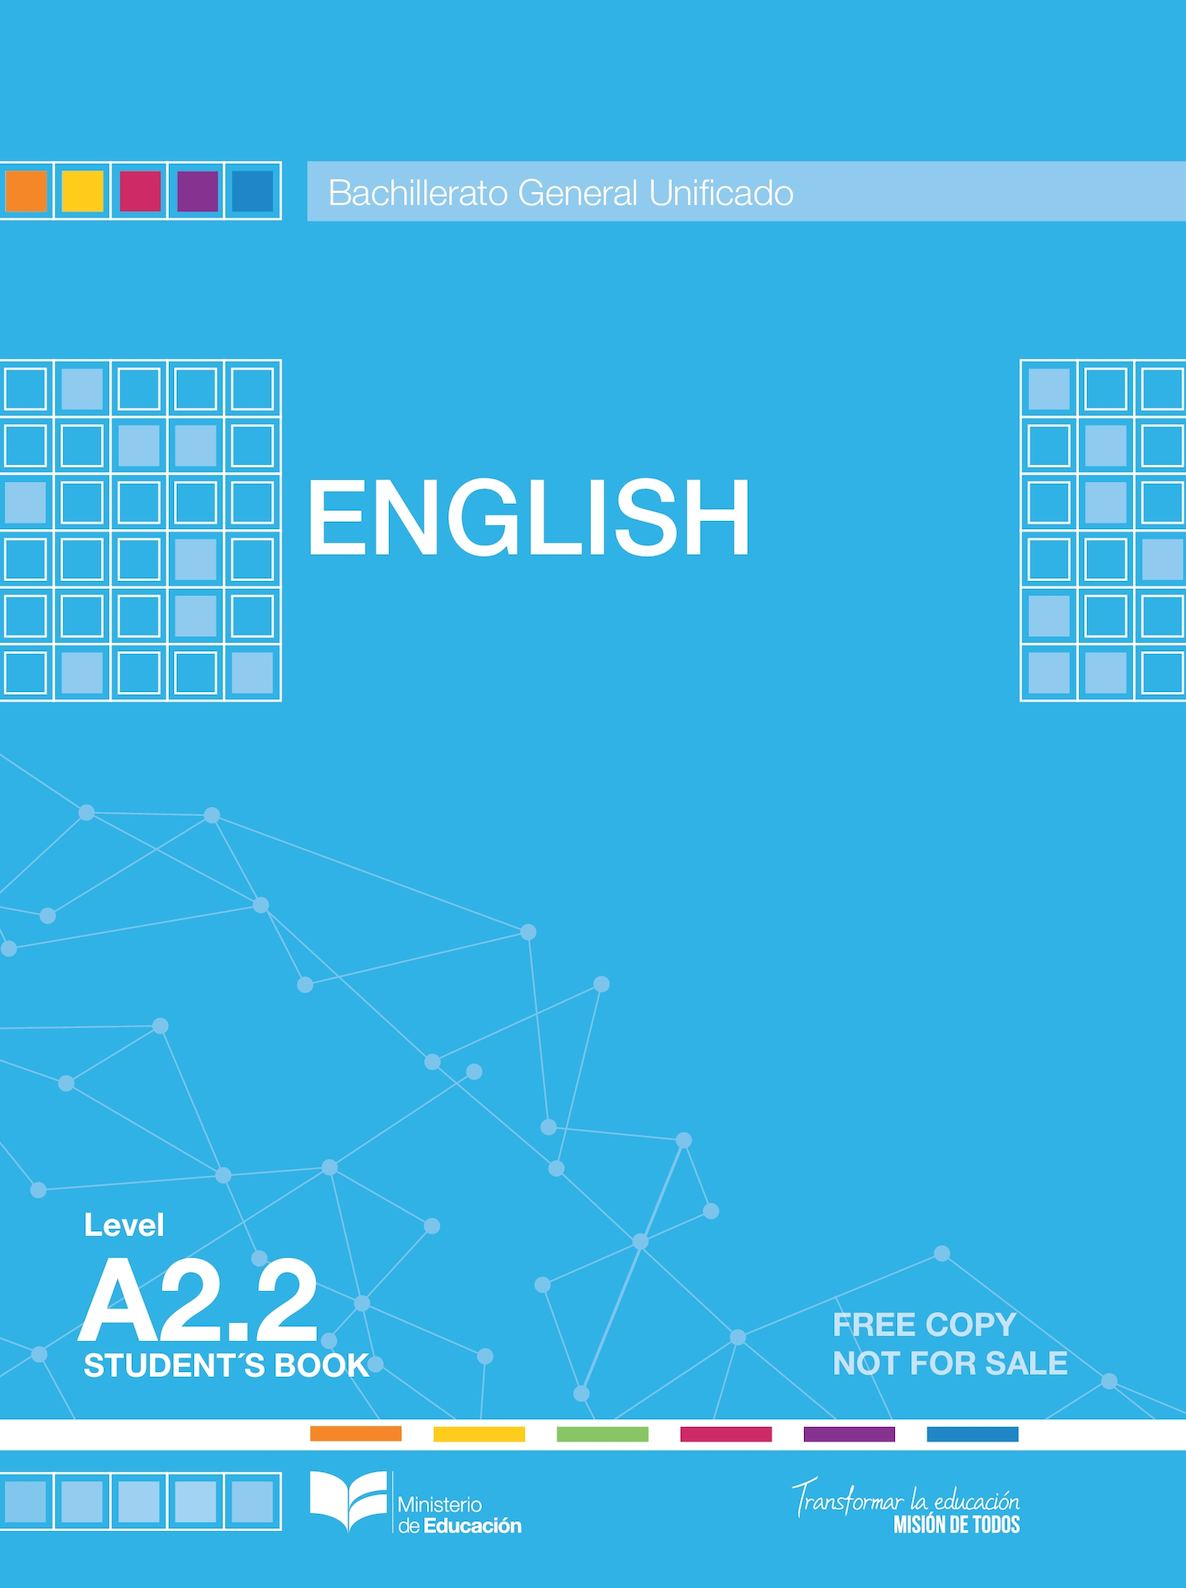 Libros Listening Ingles Calaméo In English A2 2 Students Book